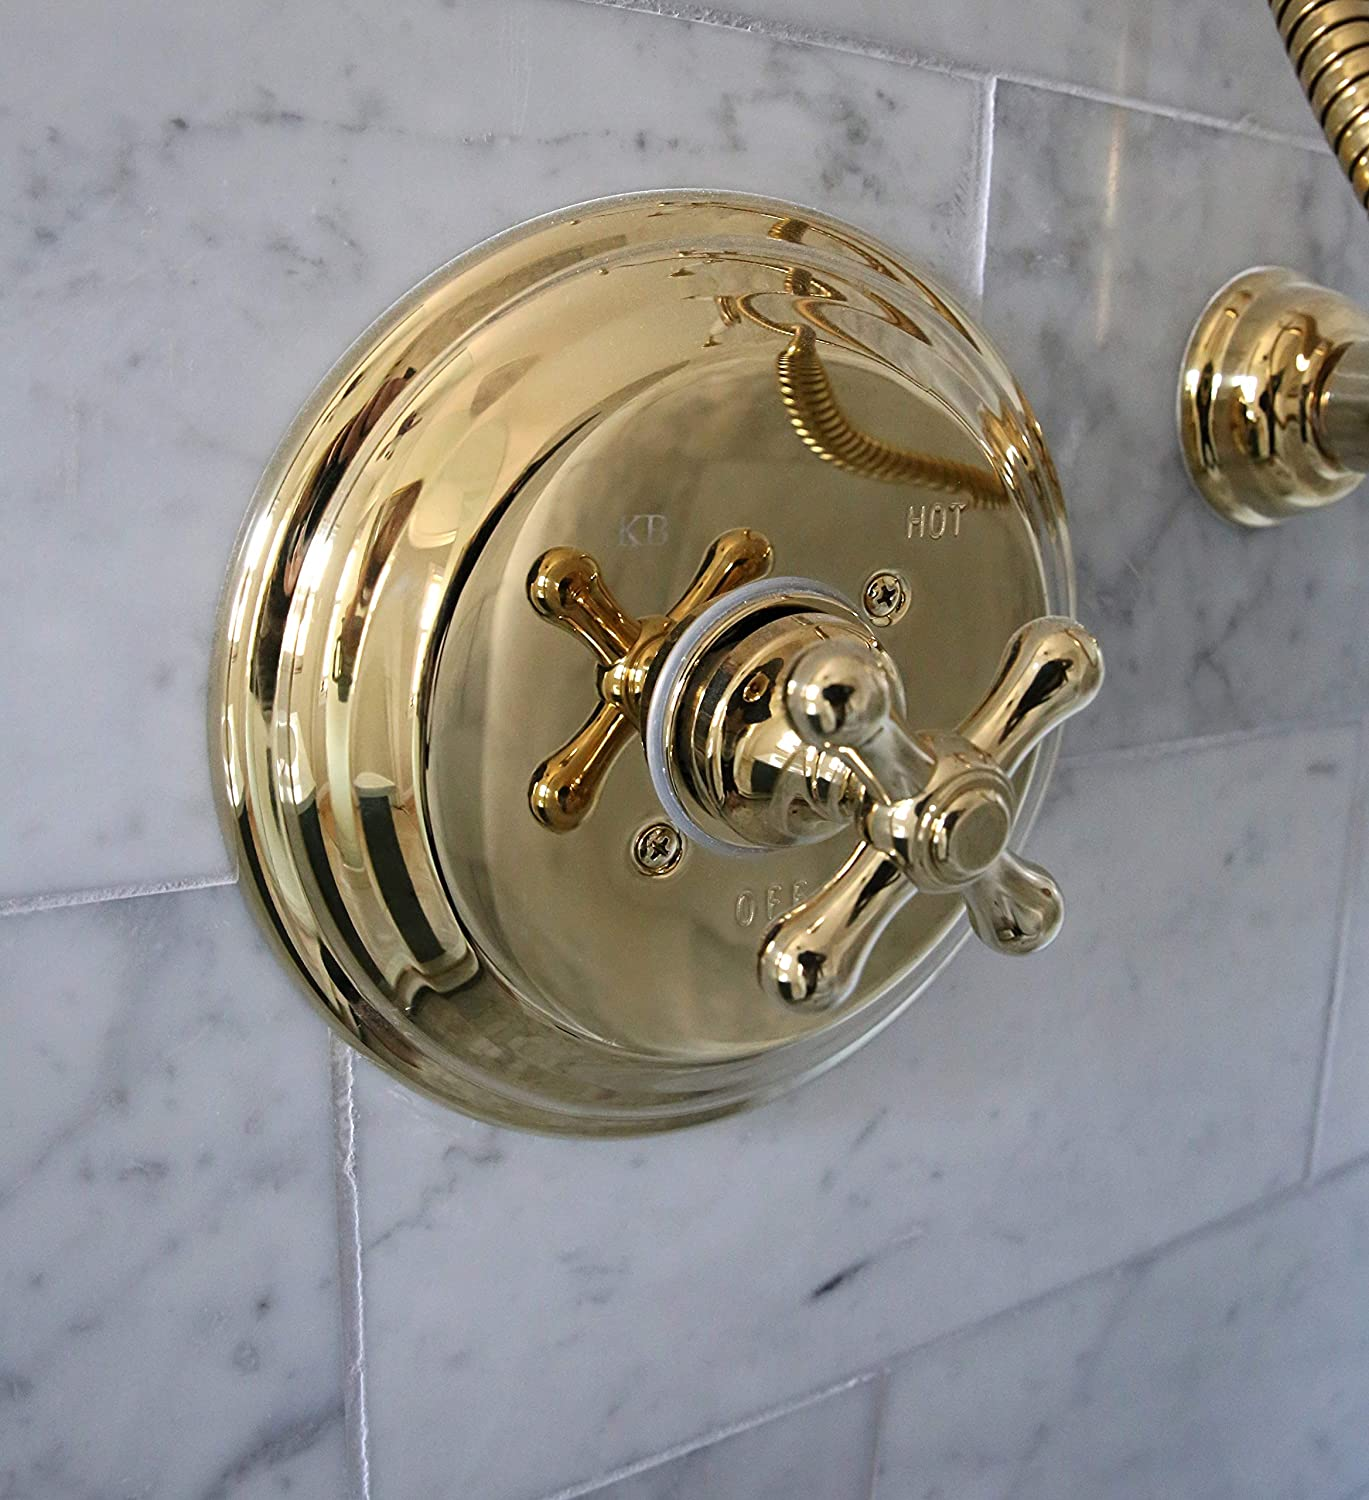 Polished Brass Kingston Brass KB3632AXSO Tub Faucet Shower Only